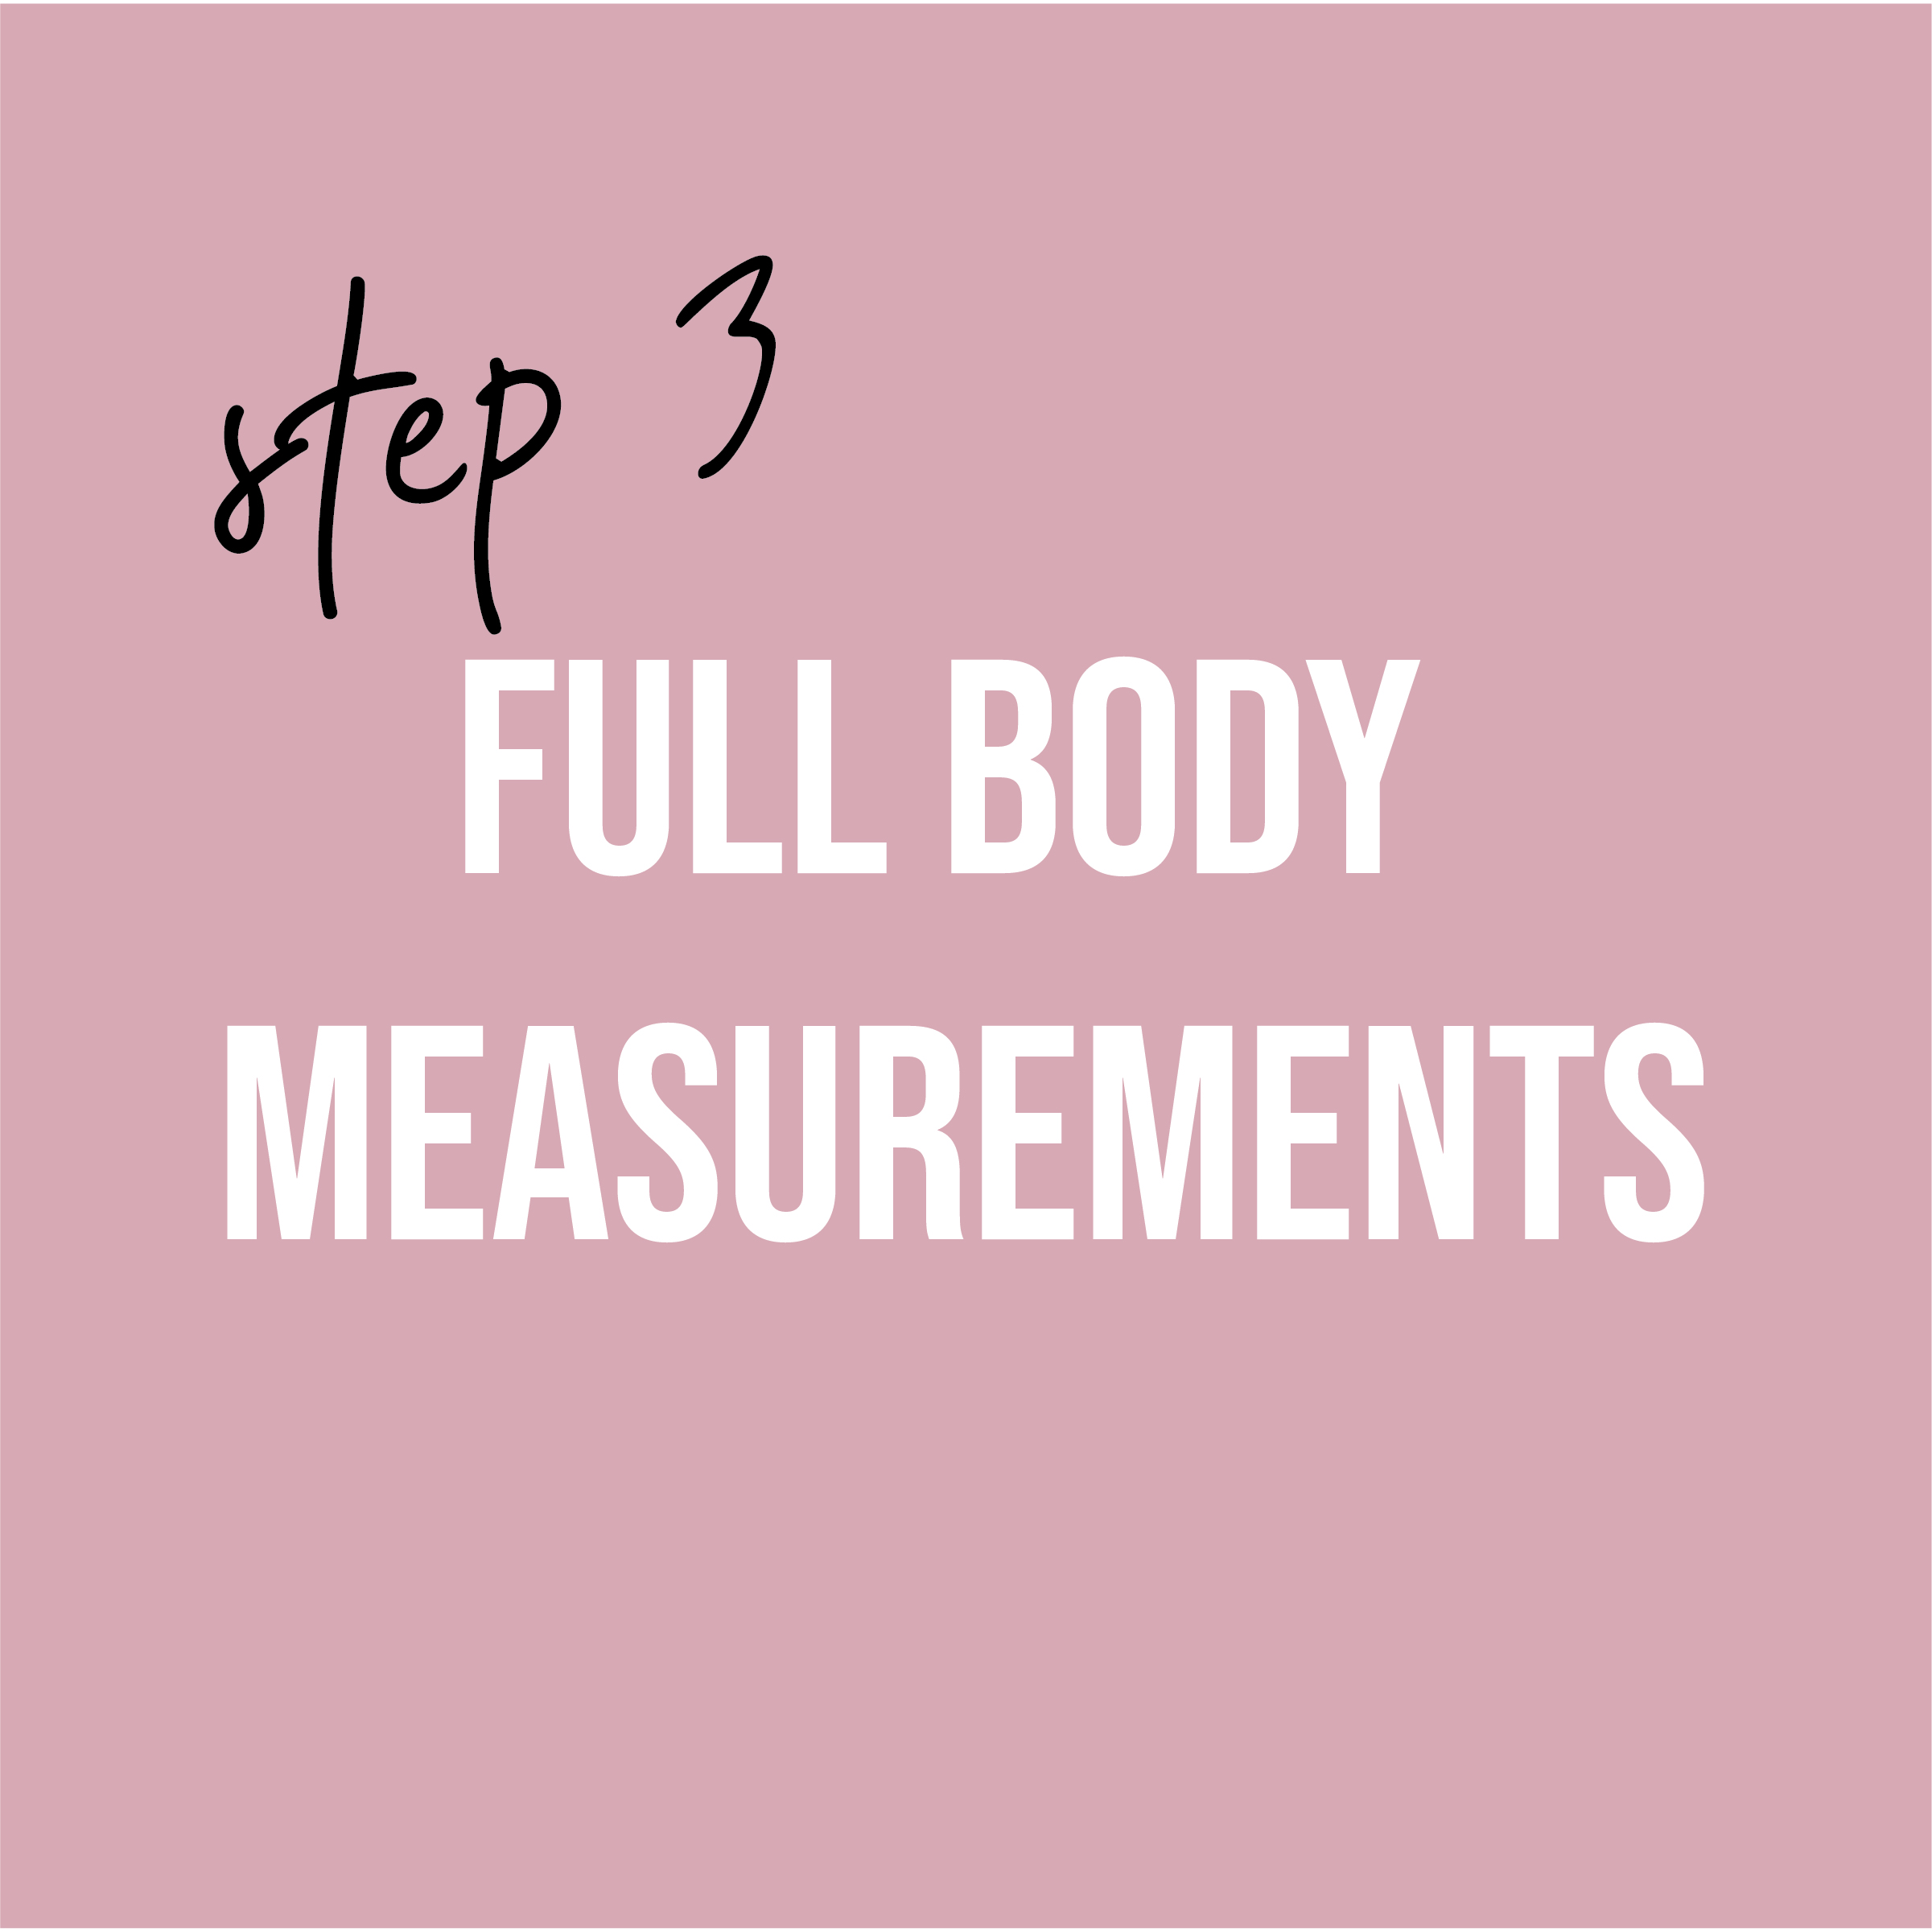 - For the third meeting, we ask that you wear snug clothing like leggings and an unpadded bra. With the help of a friend, you will fill out your full body measurements via a provided form to ensure best fit. Weight management is crucial for a successful process from this meeting until your event